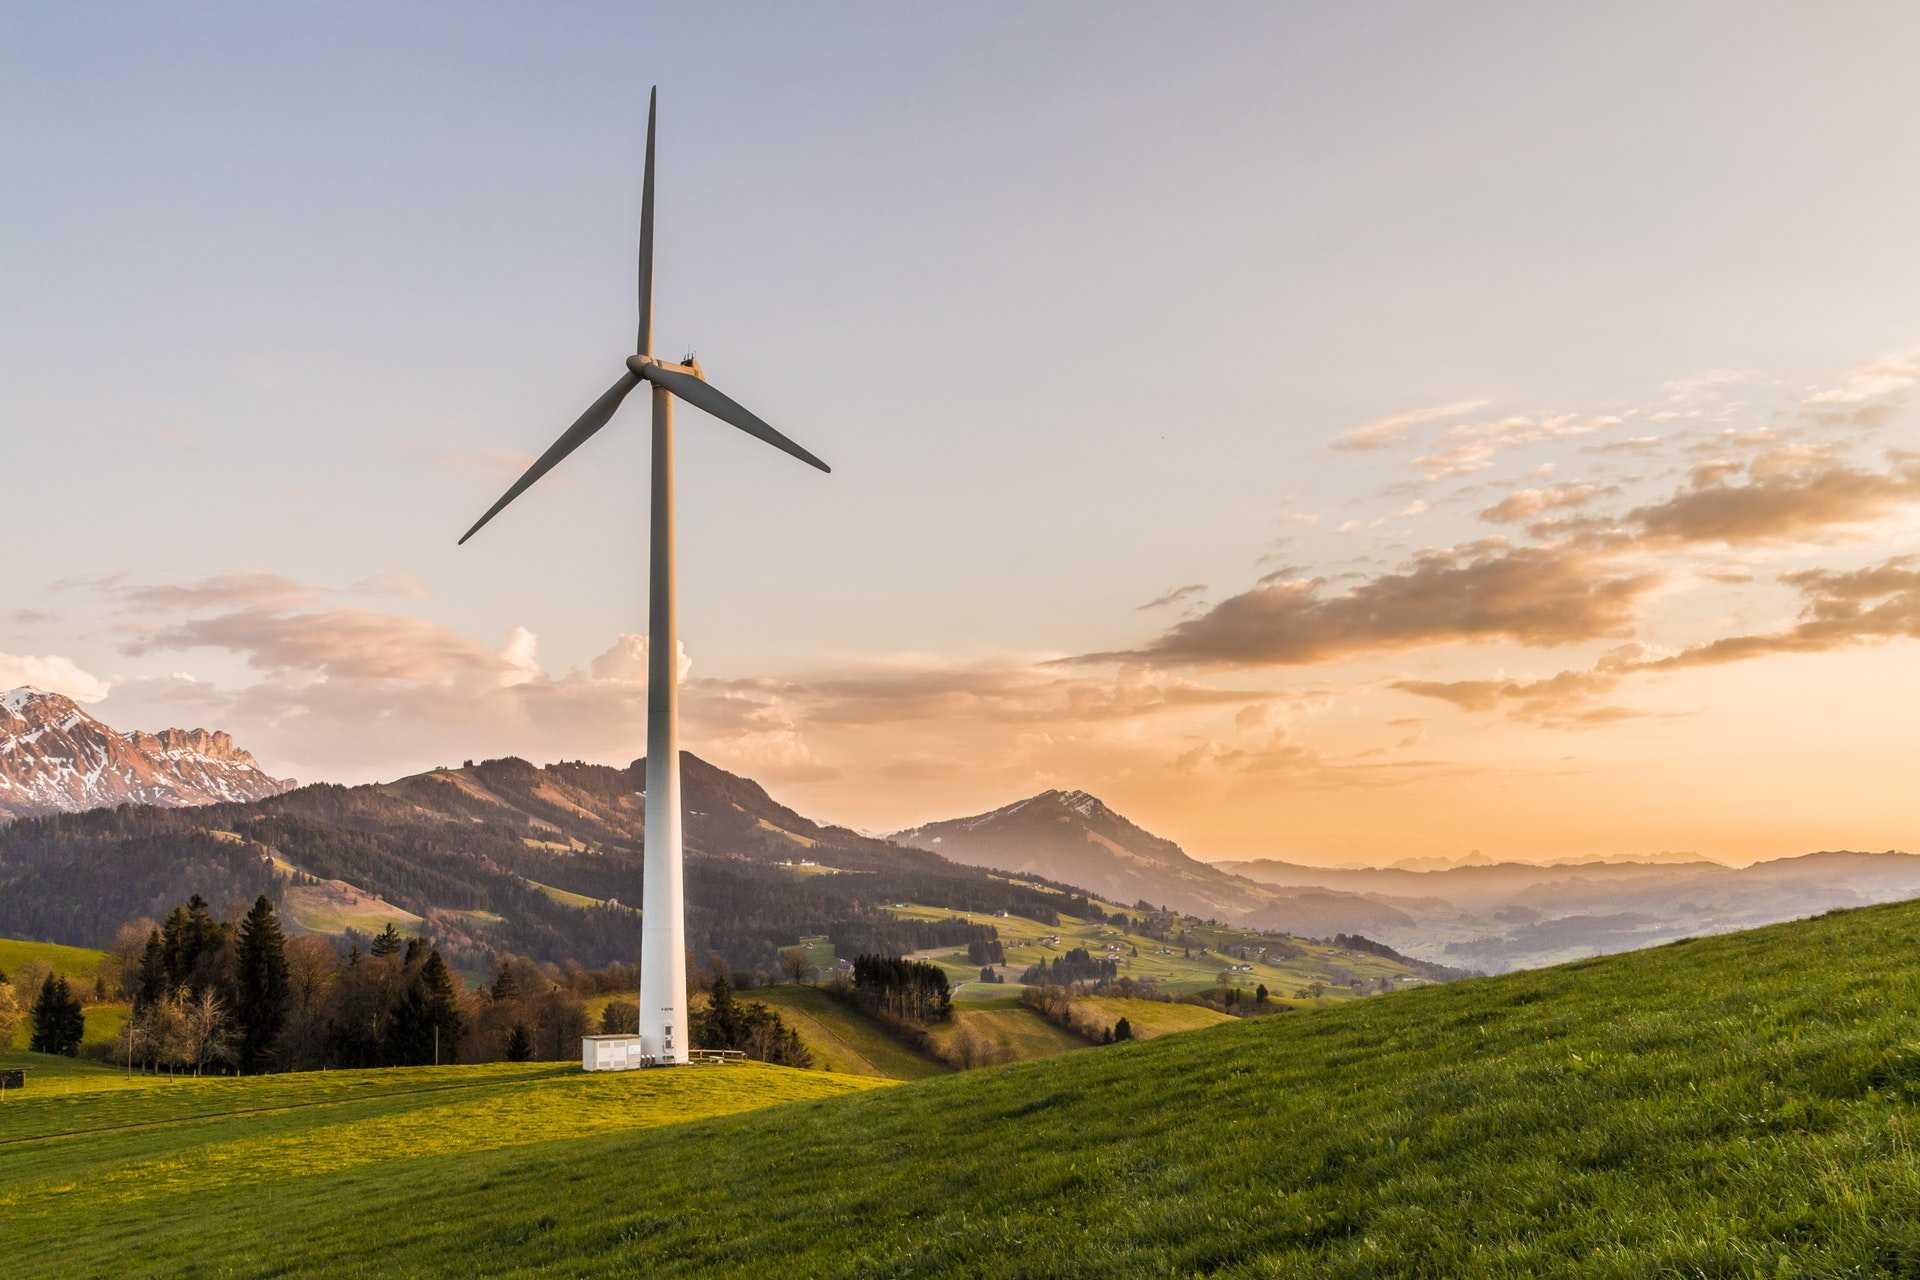 A tall wind turbine in the middle of a grassy field. In the background are some mountains, some of them covered in snow. The sky is yellow, with a few clouds.